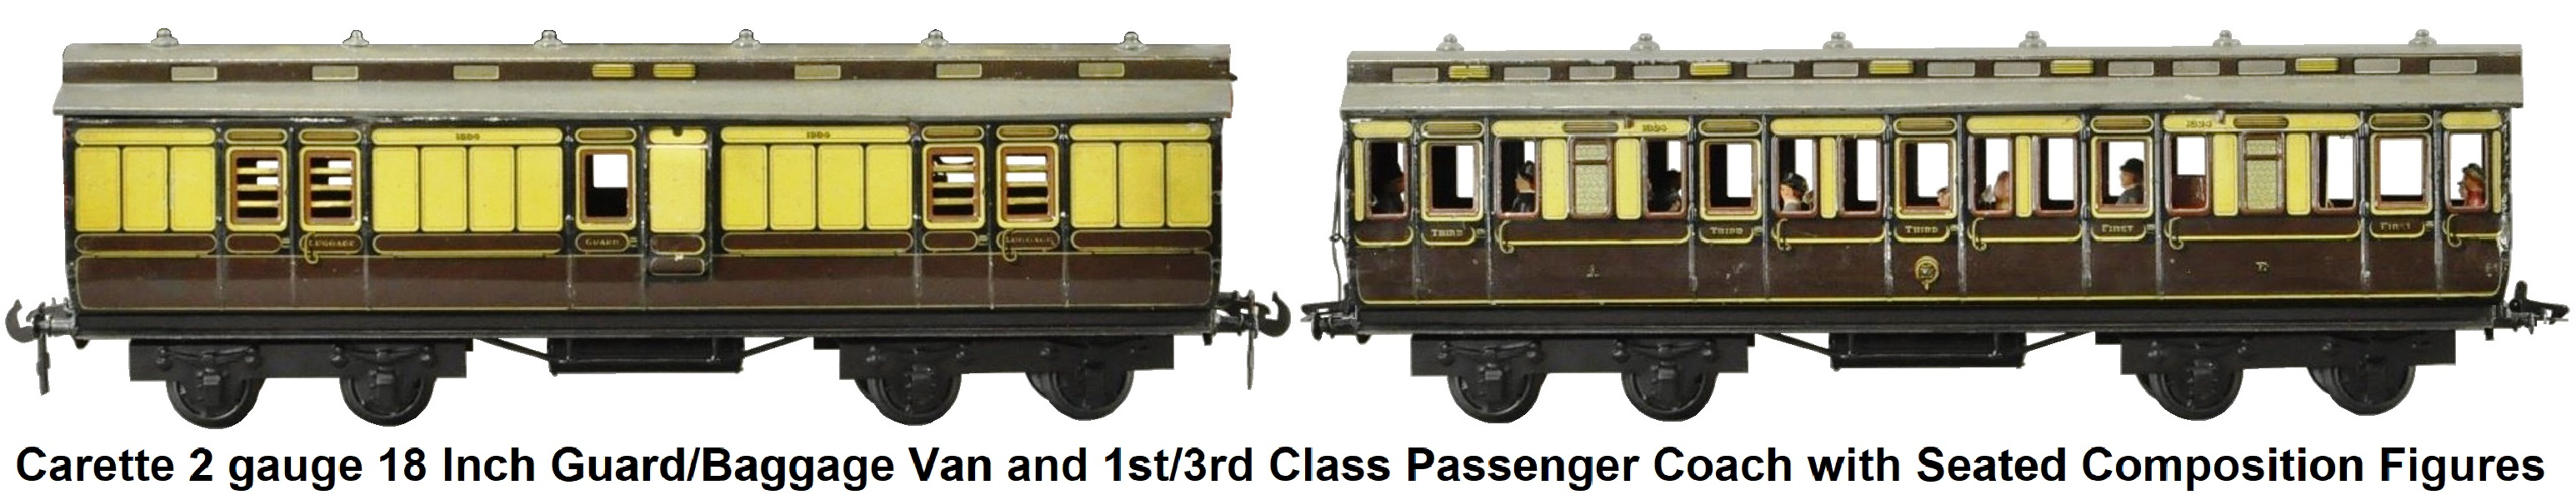 Carette 2 gauge 18 inch guard/luggage van and 1st/3rd Class coach with seated composition figures